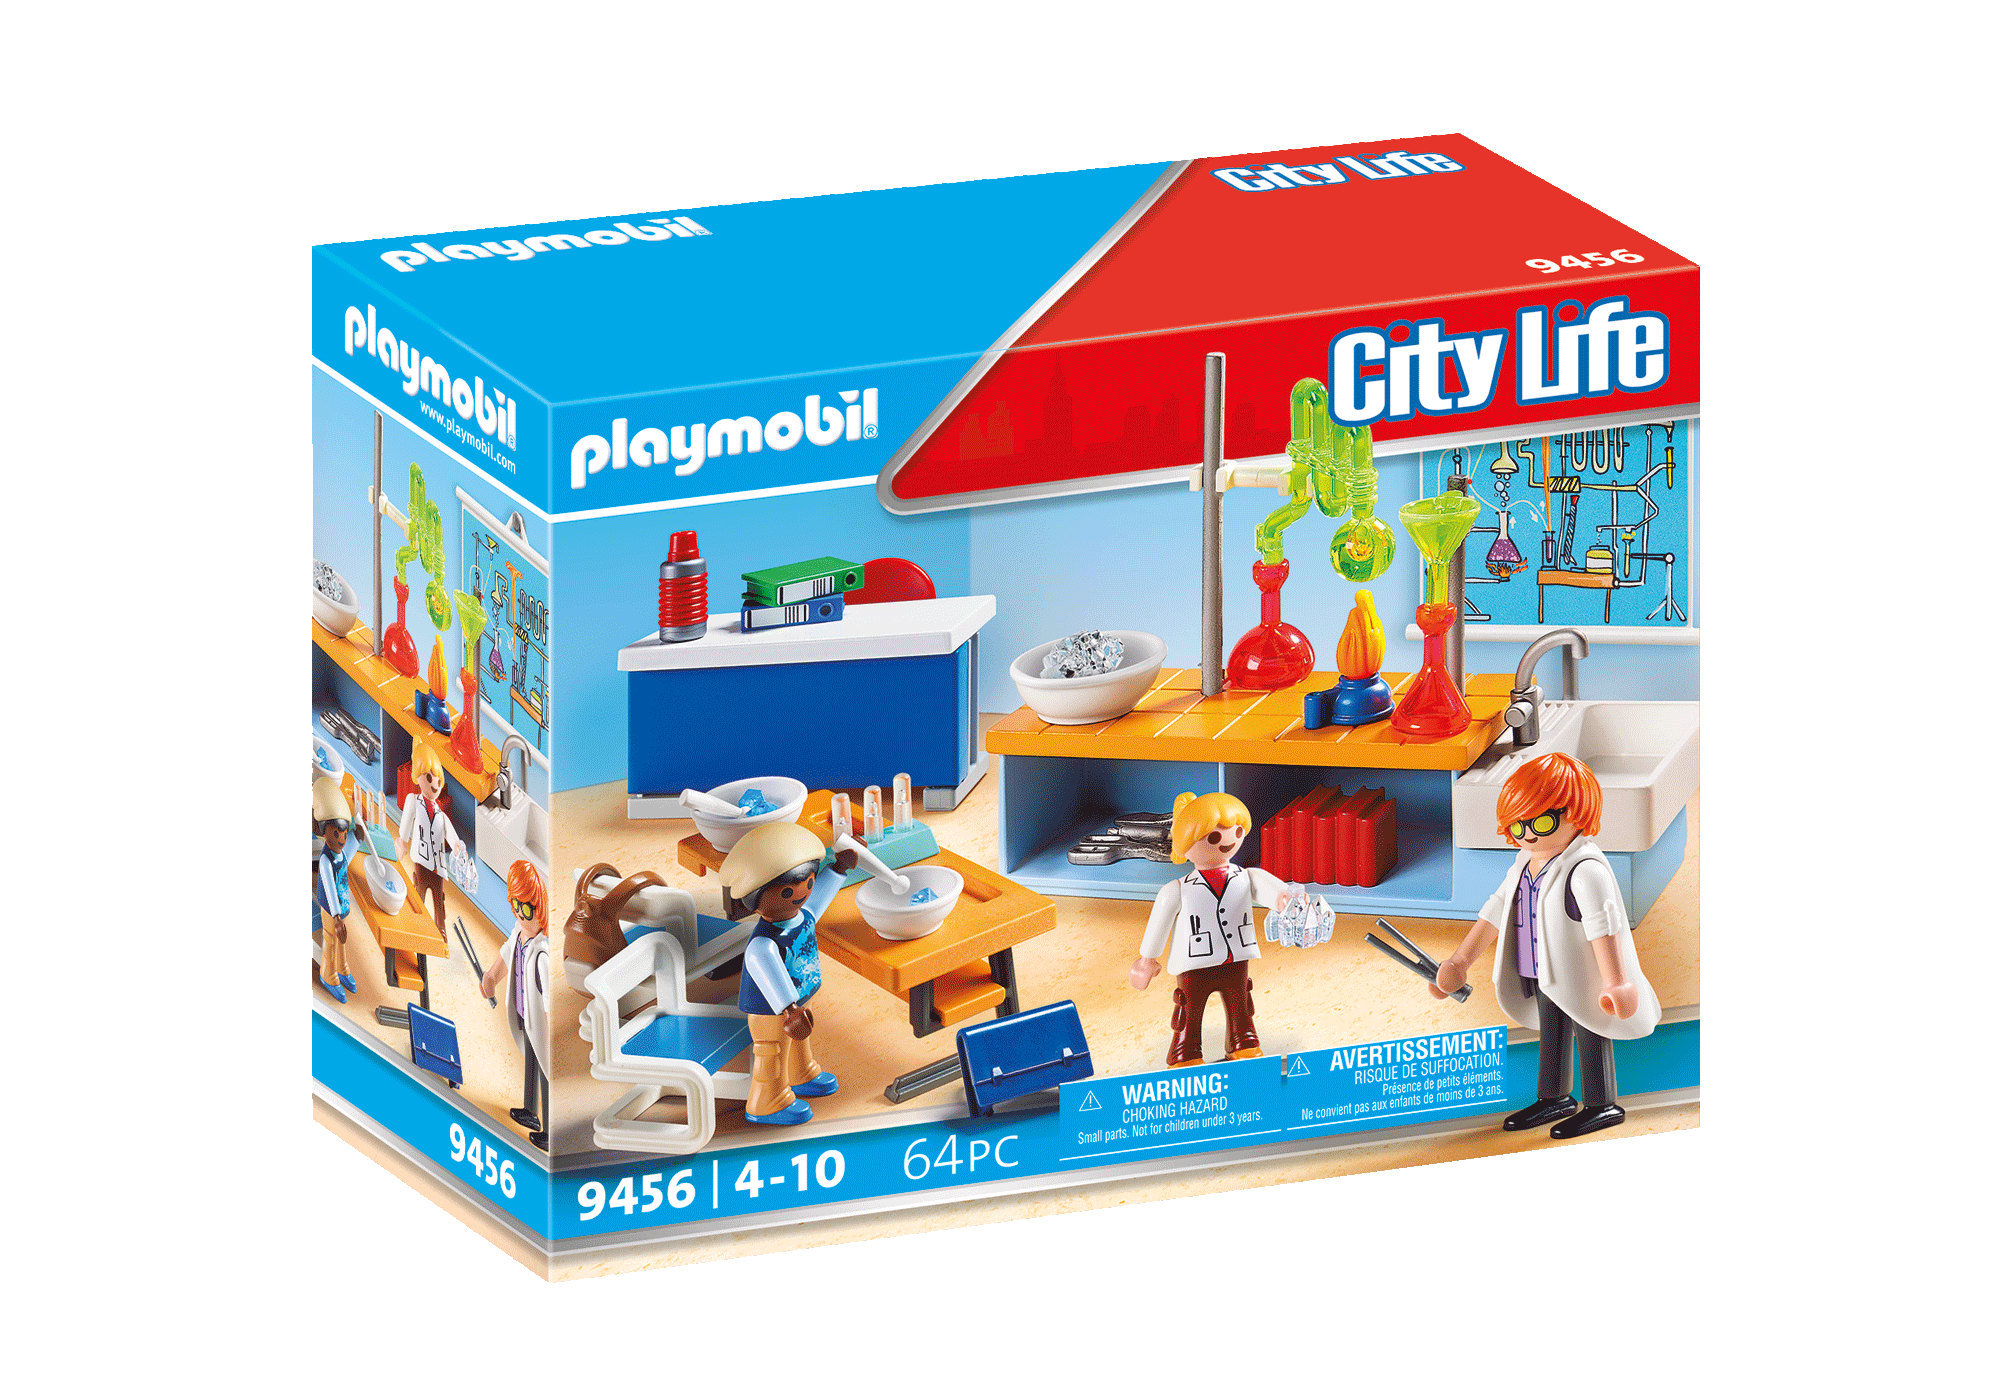 http://media.playmobil.com/i/playmobil/9456_product_box_front/Classe de Physique Chimie